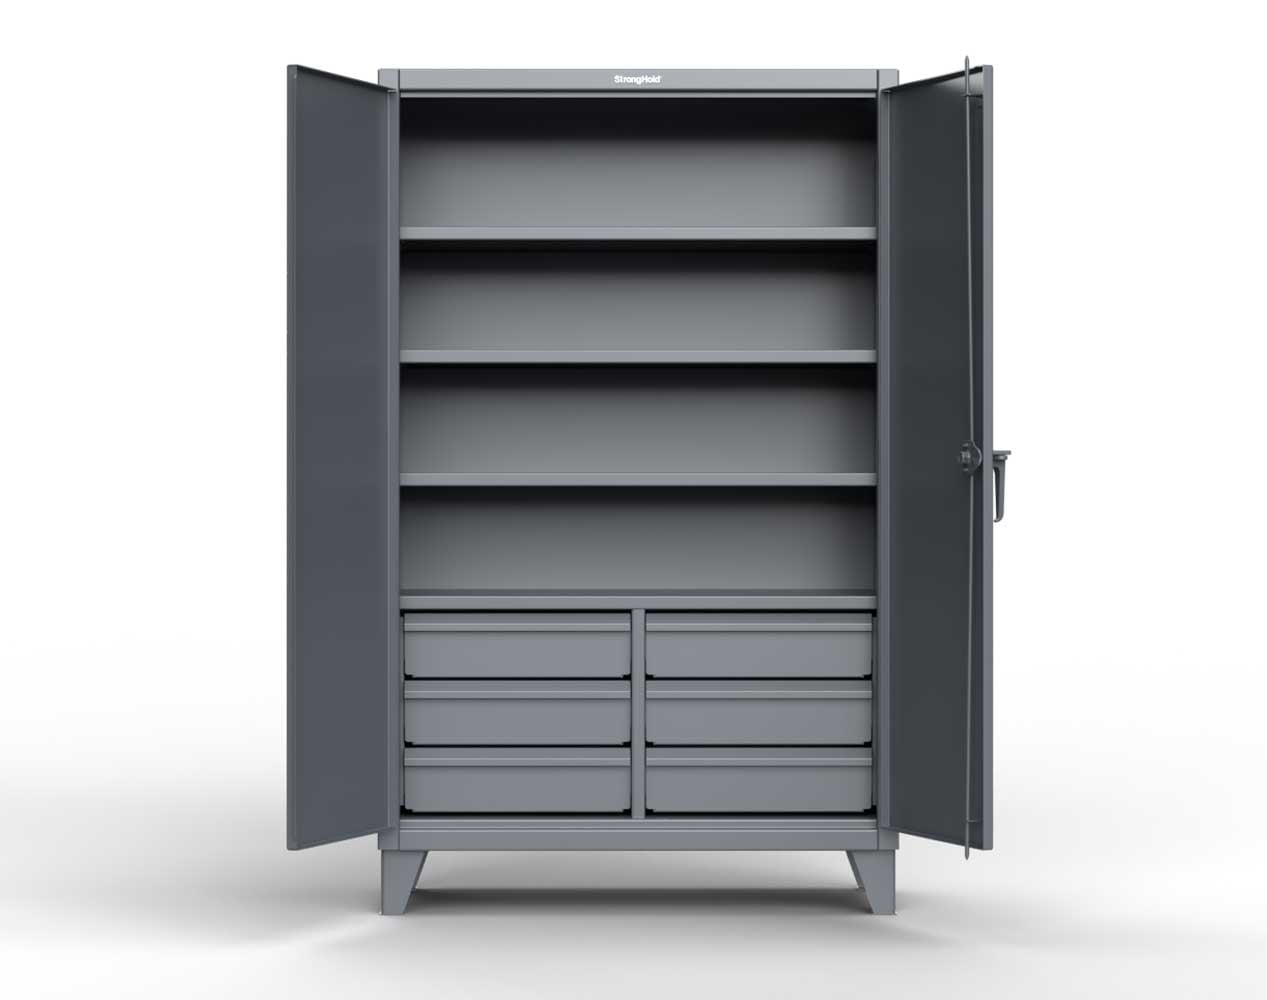 Extra Heavy Duty 12 GA Cabinet with 6 Half-Width Drawers, 4 Shelves – 48 In. W x 24 In. D x 78 In. H